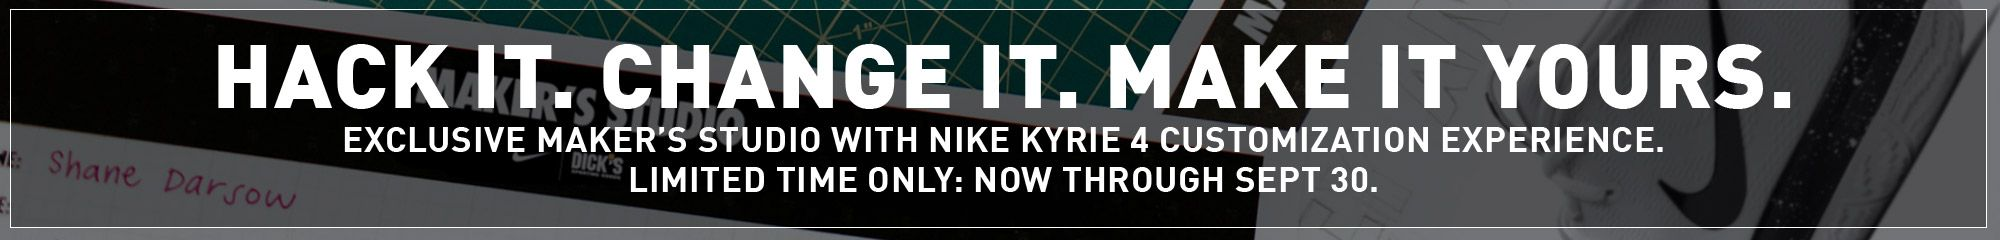 Hack it. Change it. Make it Yours. Exclusive Maker's Studio with NIKE Kyrie 4 customization experience. Limited time only: Now through Sept 30.